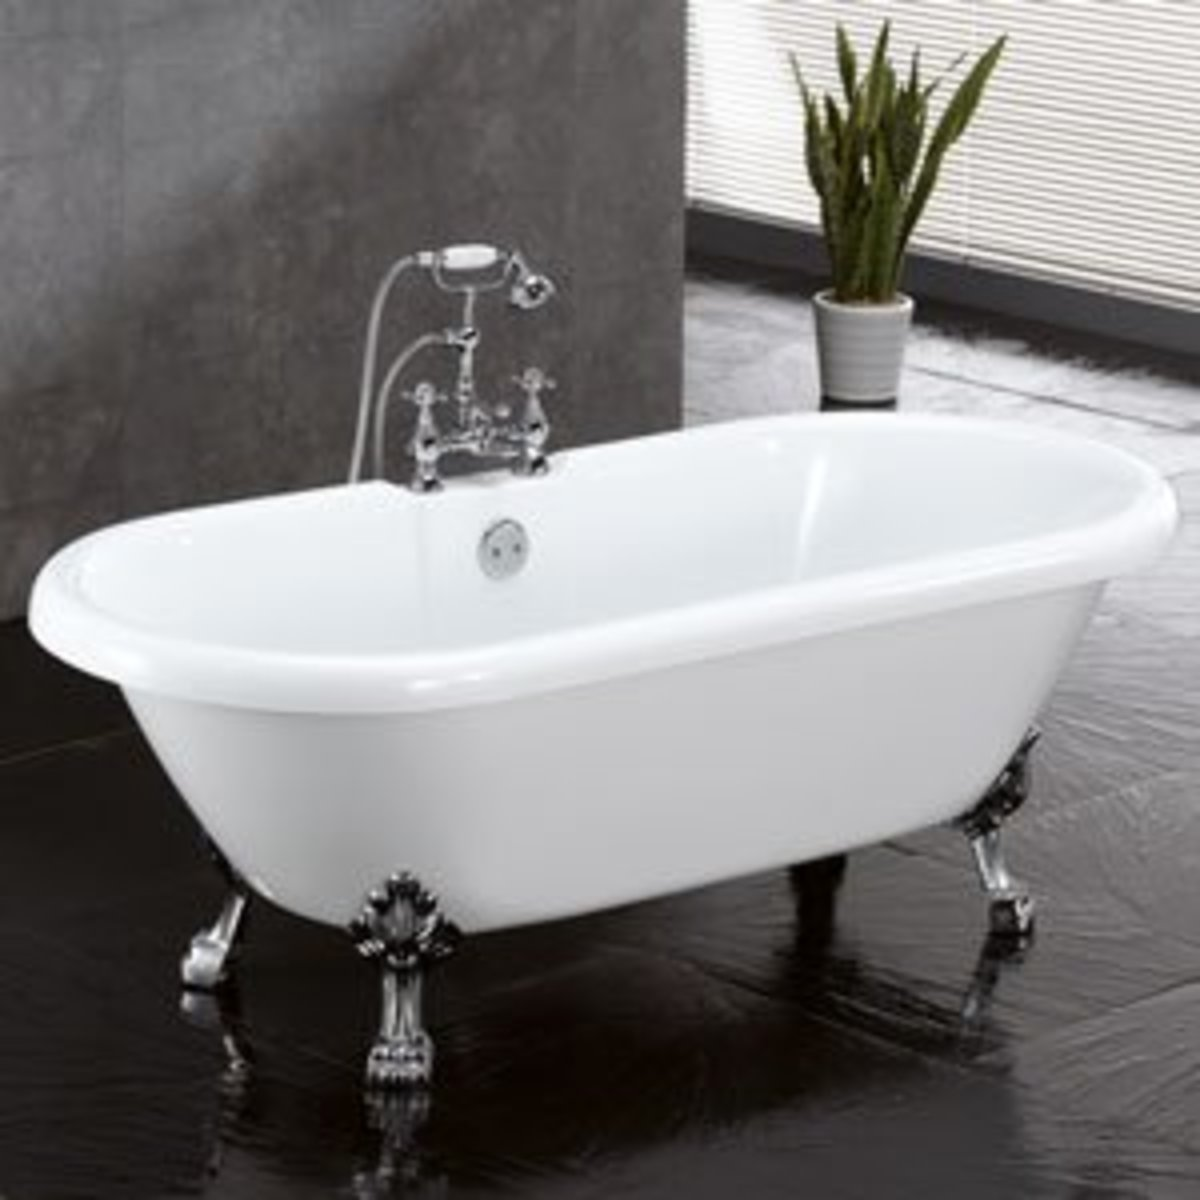 Vintage tub: double-ended clawfoot